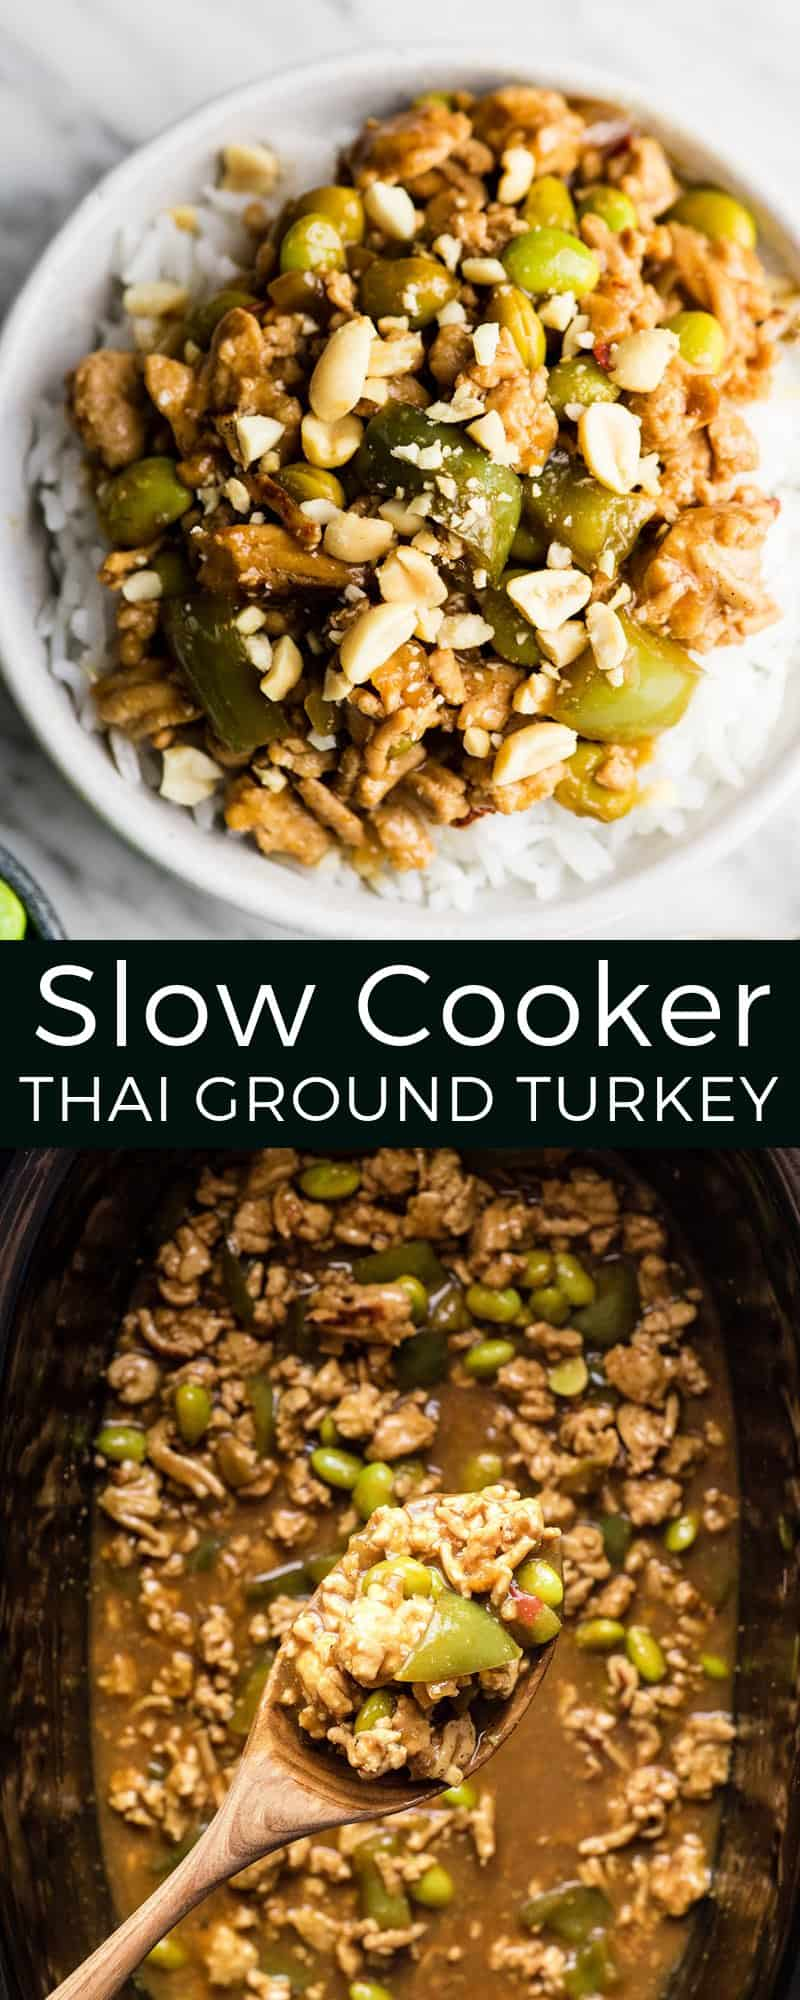 Healthy Thai Slow-Cooker Ground Turkey Recipe is an easy main dish! It only takes 10 minutes to prepare, plus it's gluten-free and dairy-free! #slowcooker #crockpot #groundturkey #thai #coconutmilk #glutenfree #dairyfree #healthyrecipe #easydinner